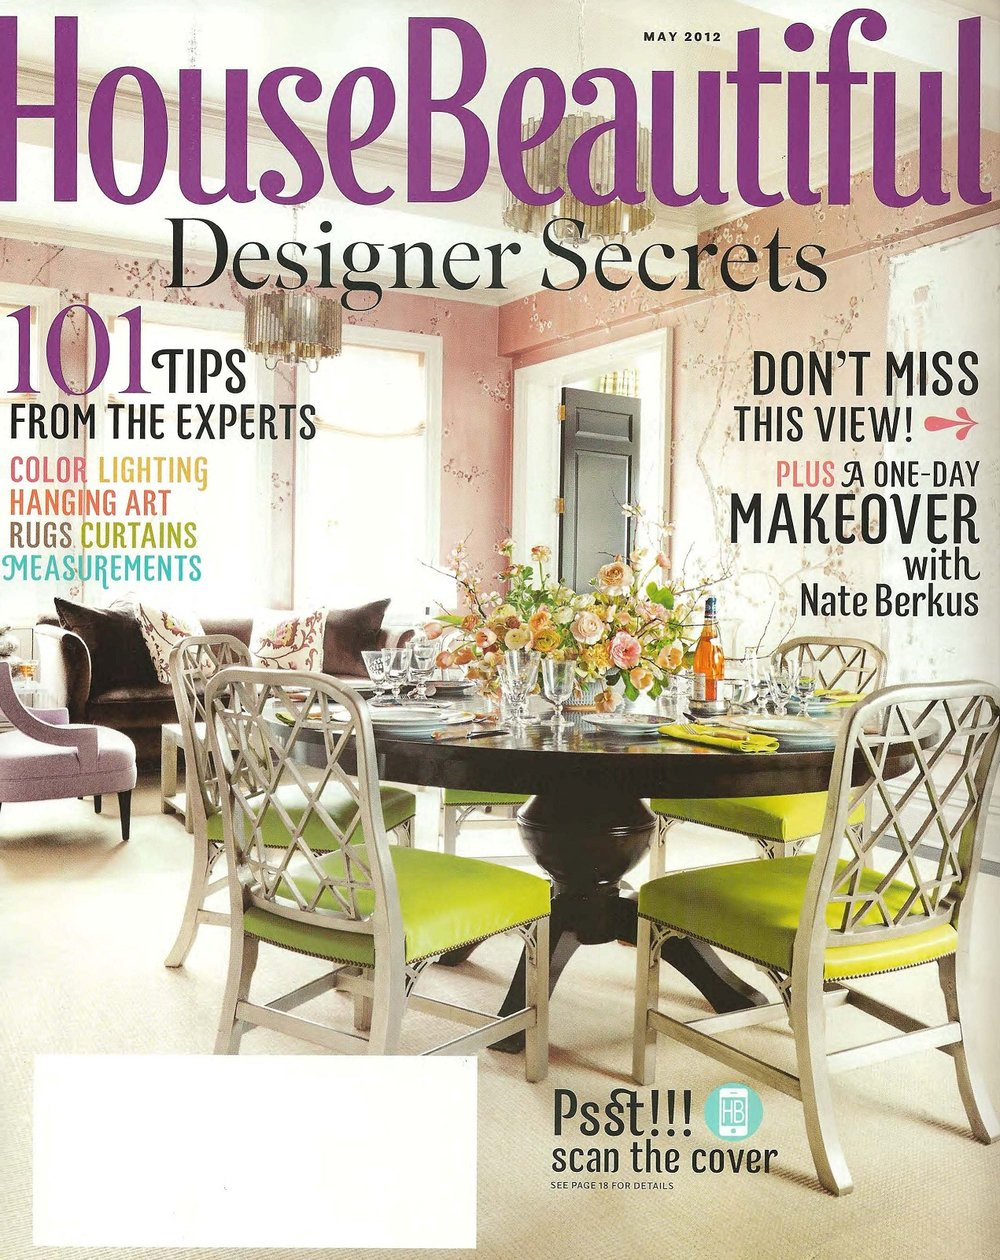 House Beautiful / May 2012